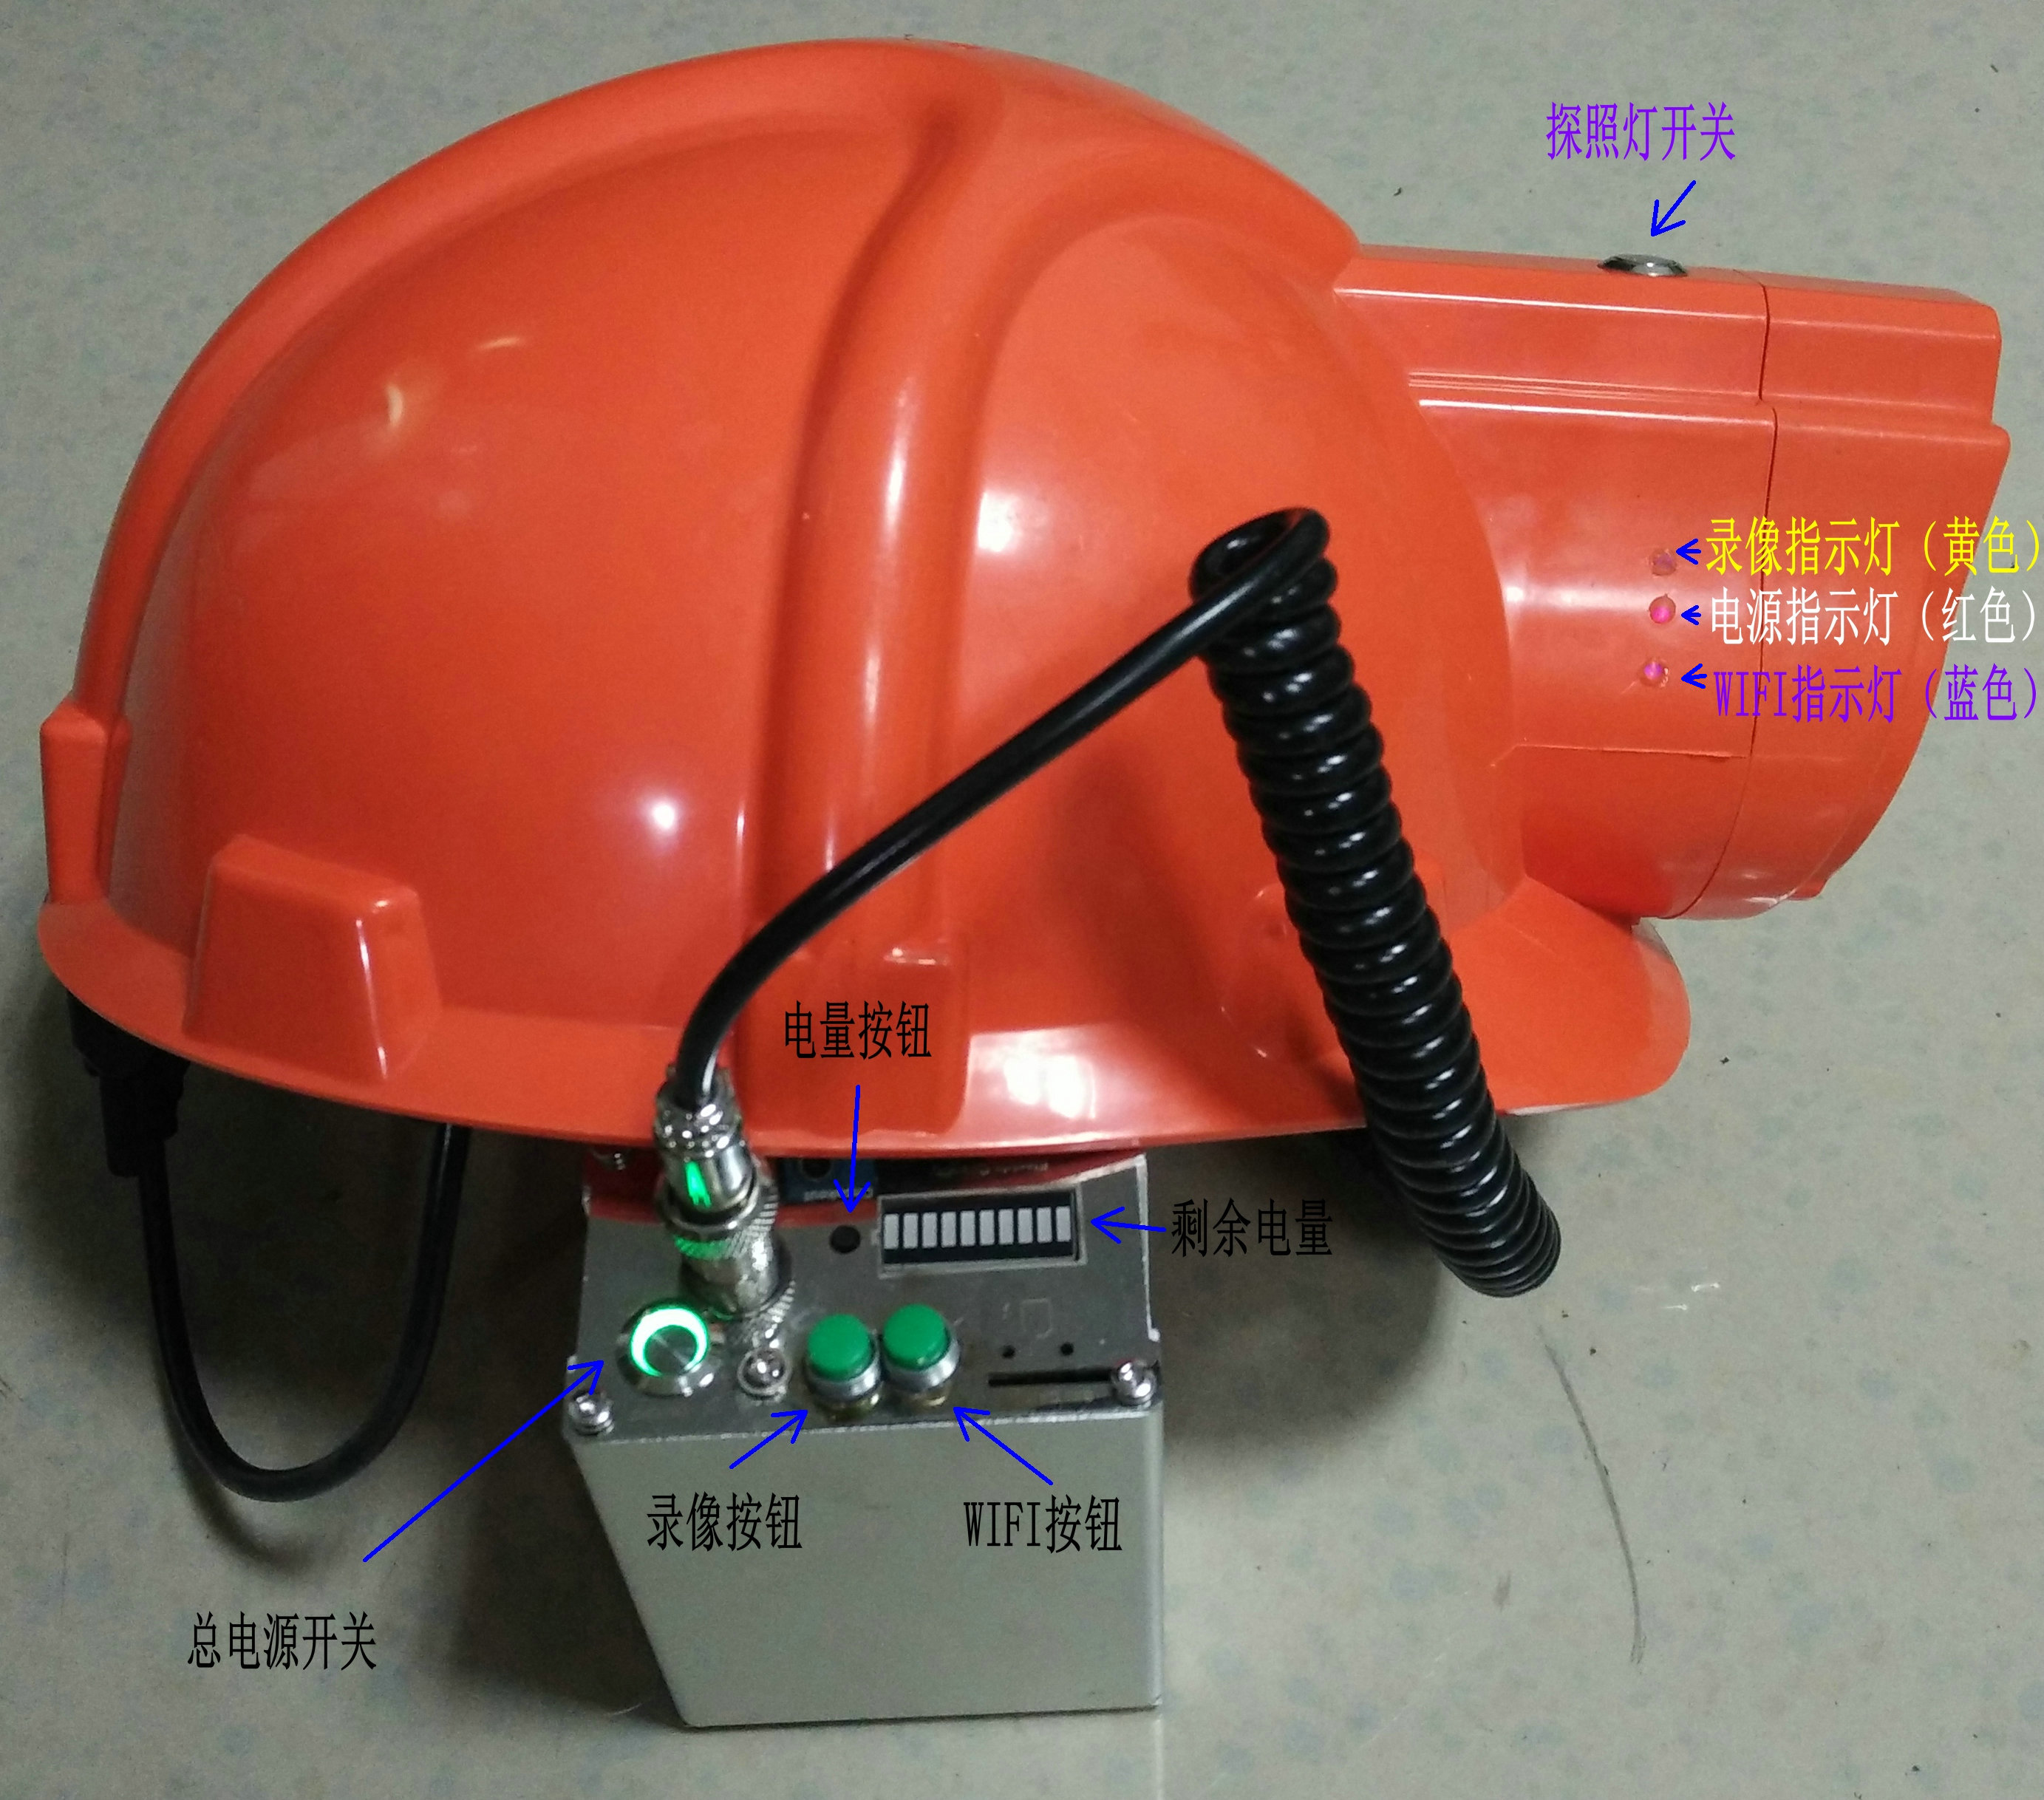 Smart 4G video transmission helmet,construction site protection helmet,wireless 4G transmission